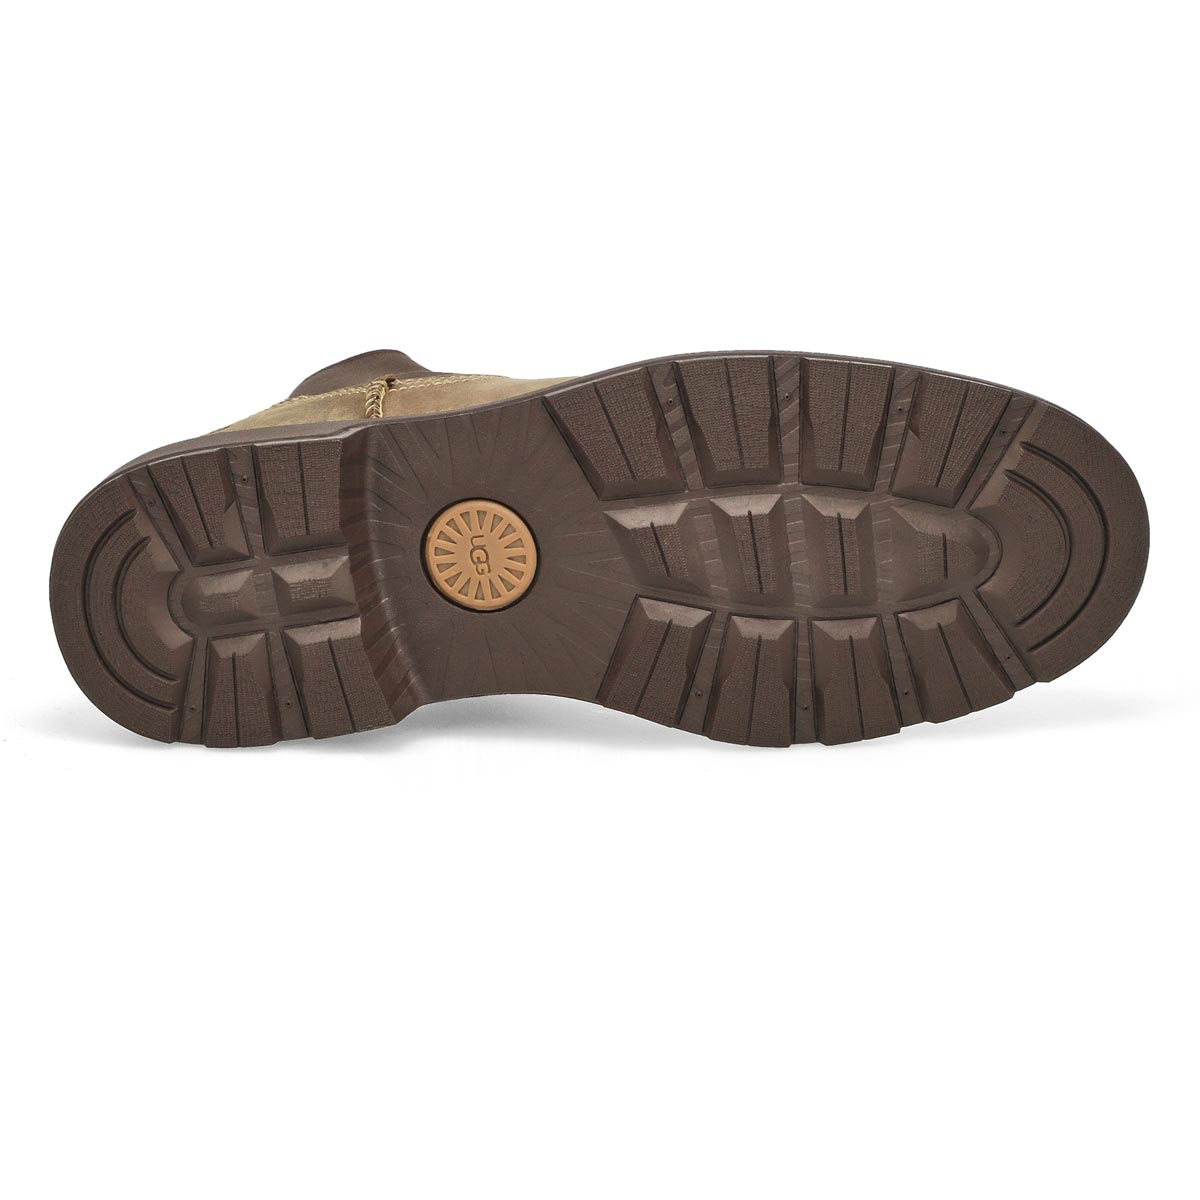 Botte Chelsea Biltmore, imperm., sable,